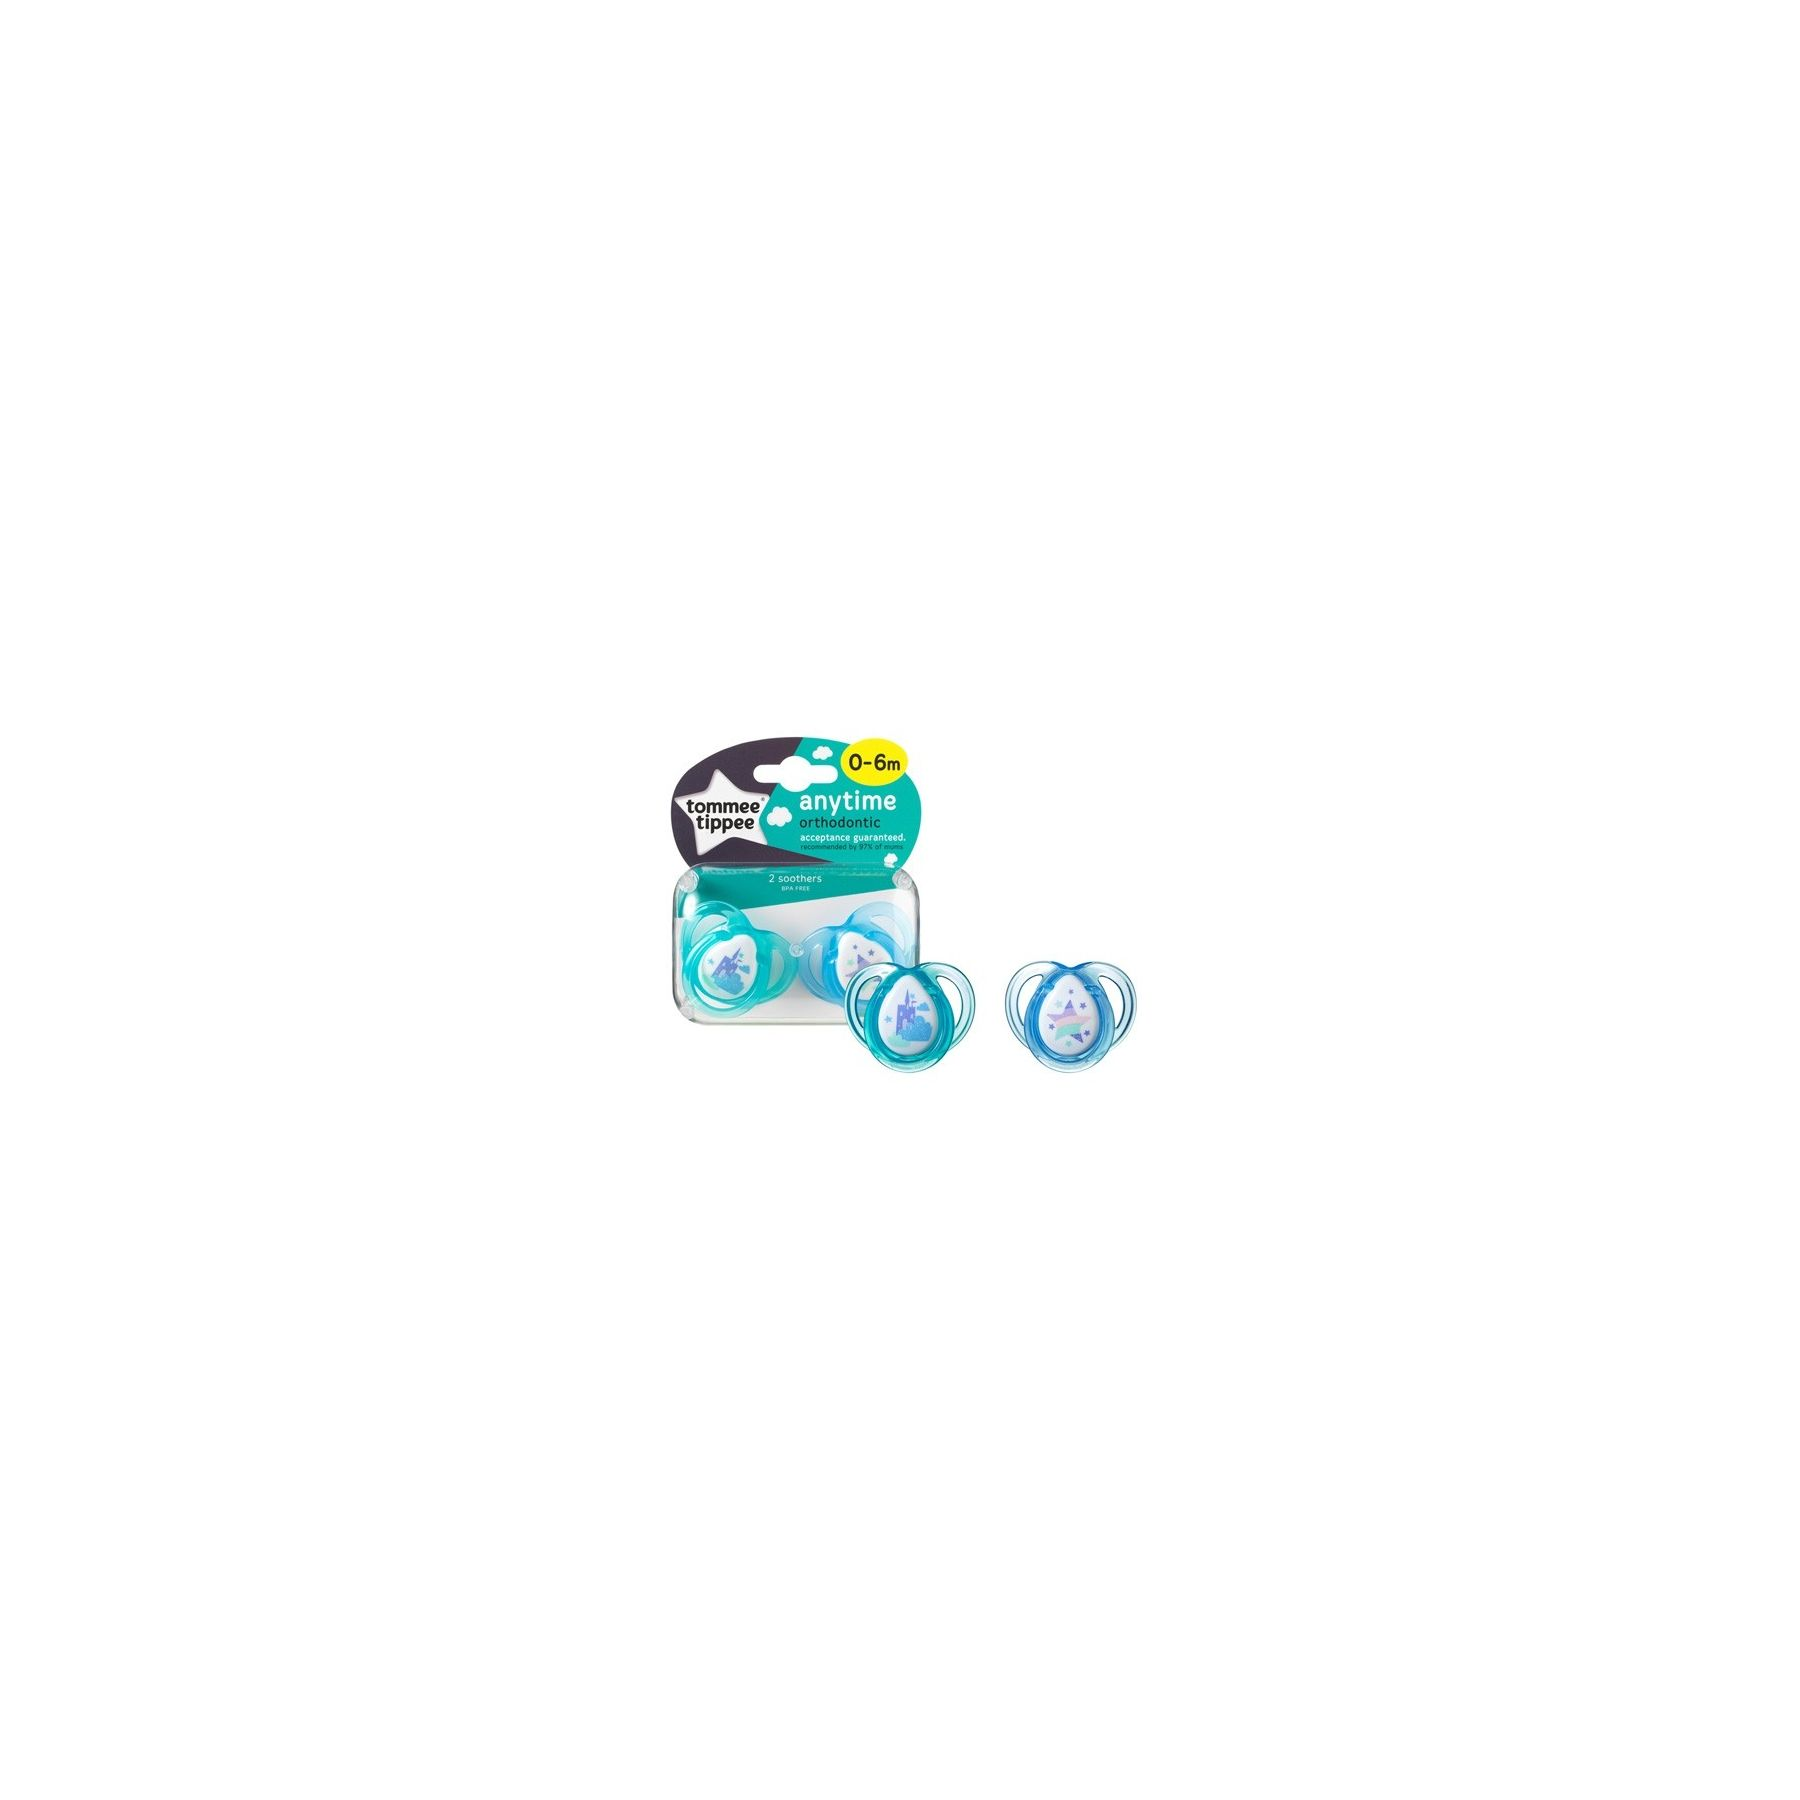 Sucettes classiques Any Time 0-6 mois Bleu / Vert Tommee Tippee